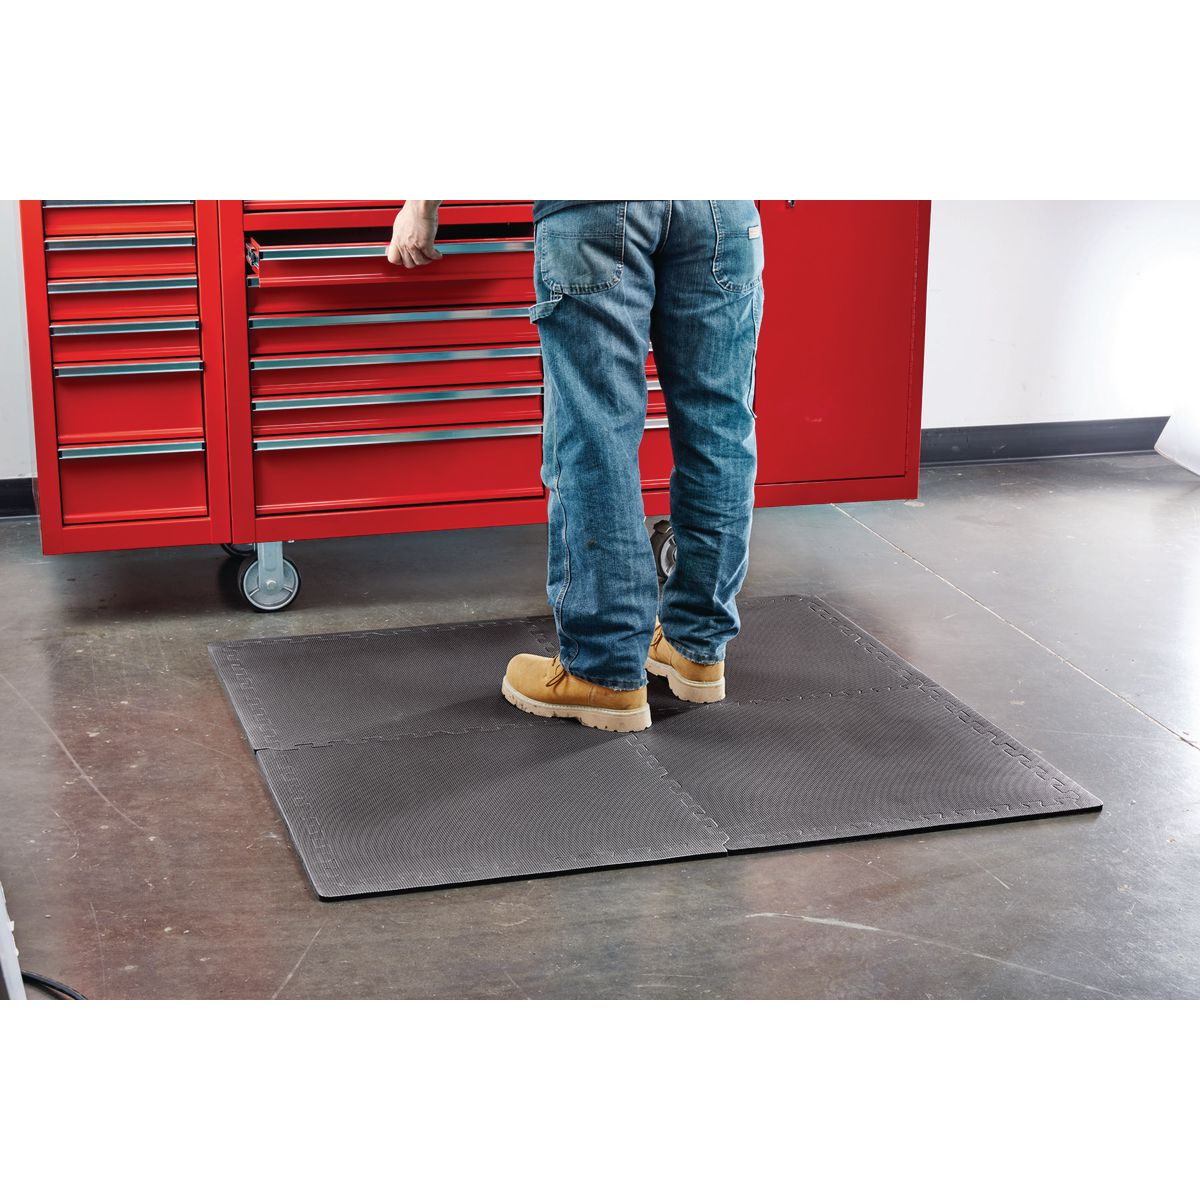 com for dp mats fatigue thick floor optimal standing garage mat warehouse cushioned calculated kitchen thickness office amazon extreme anti desk density